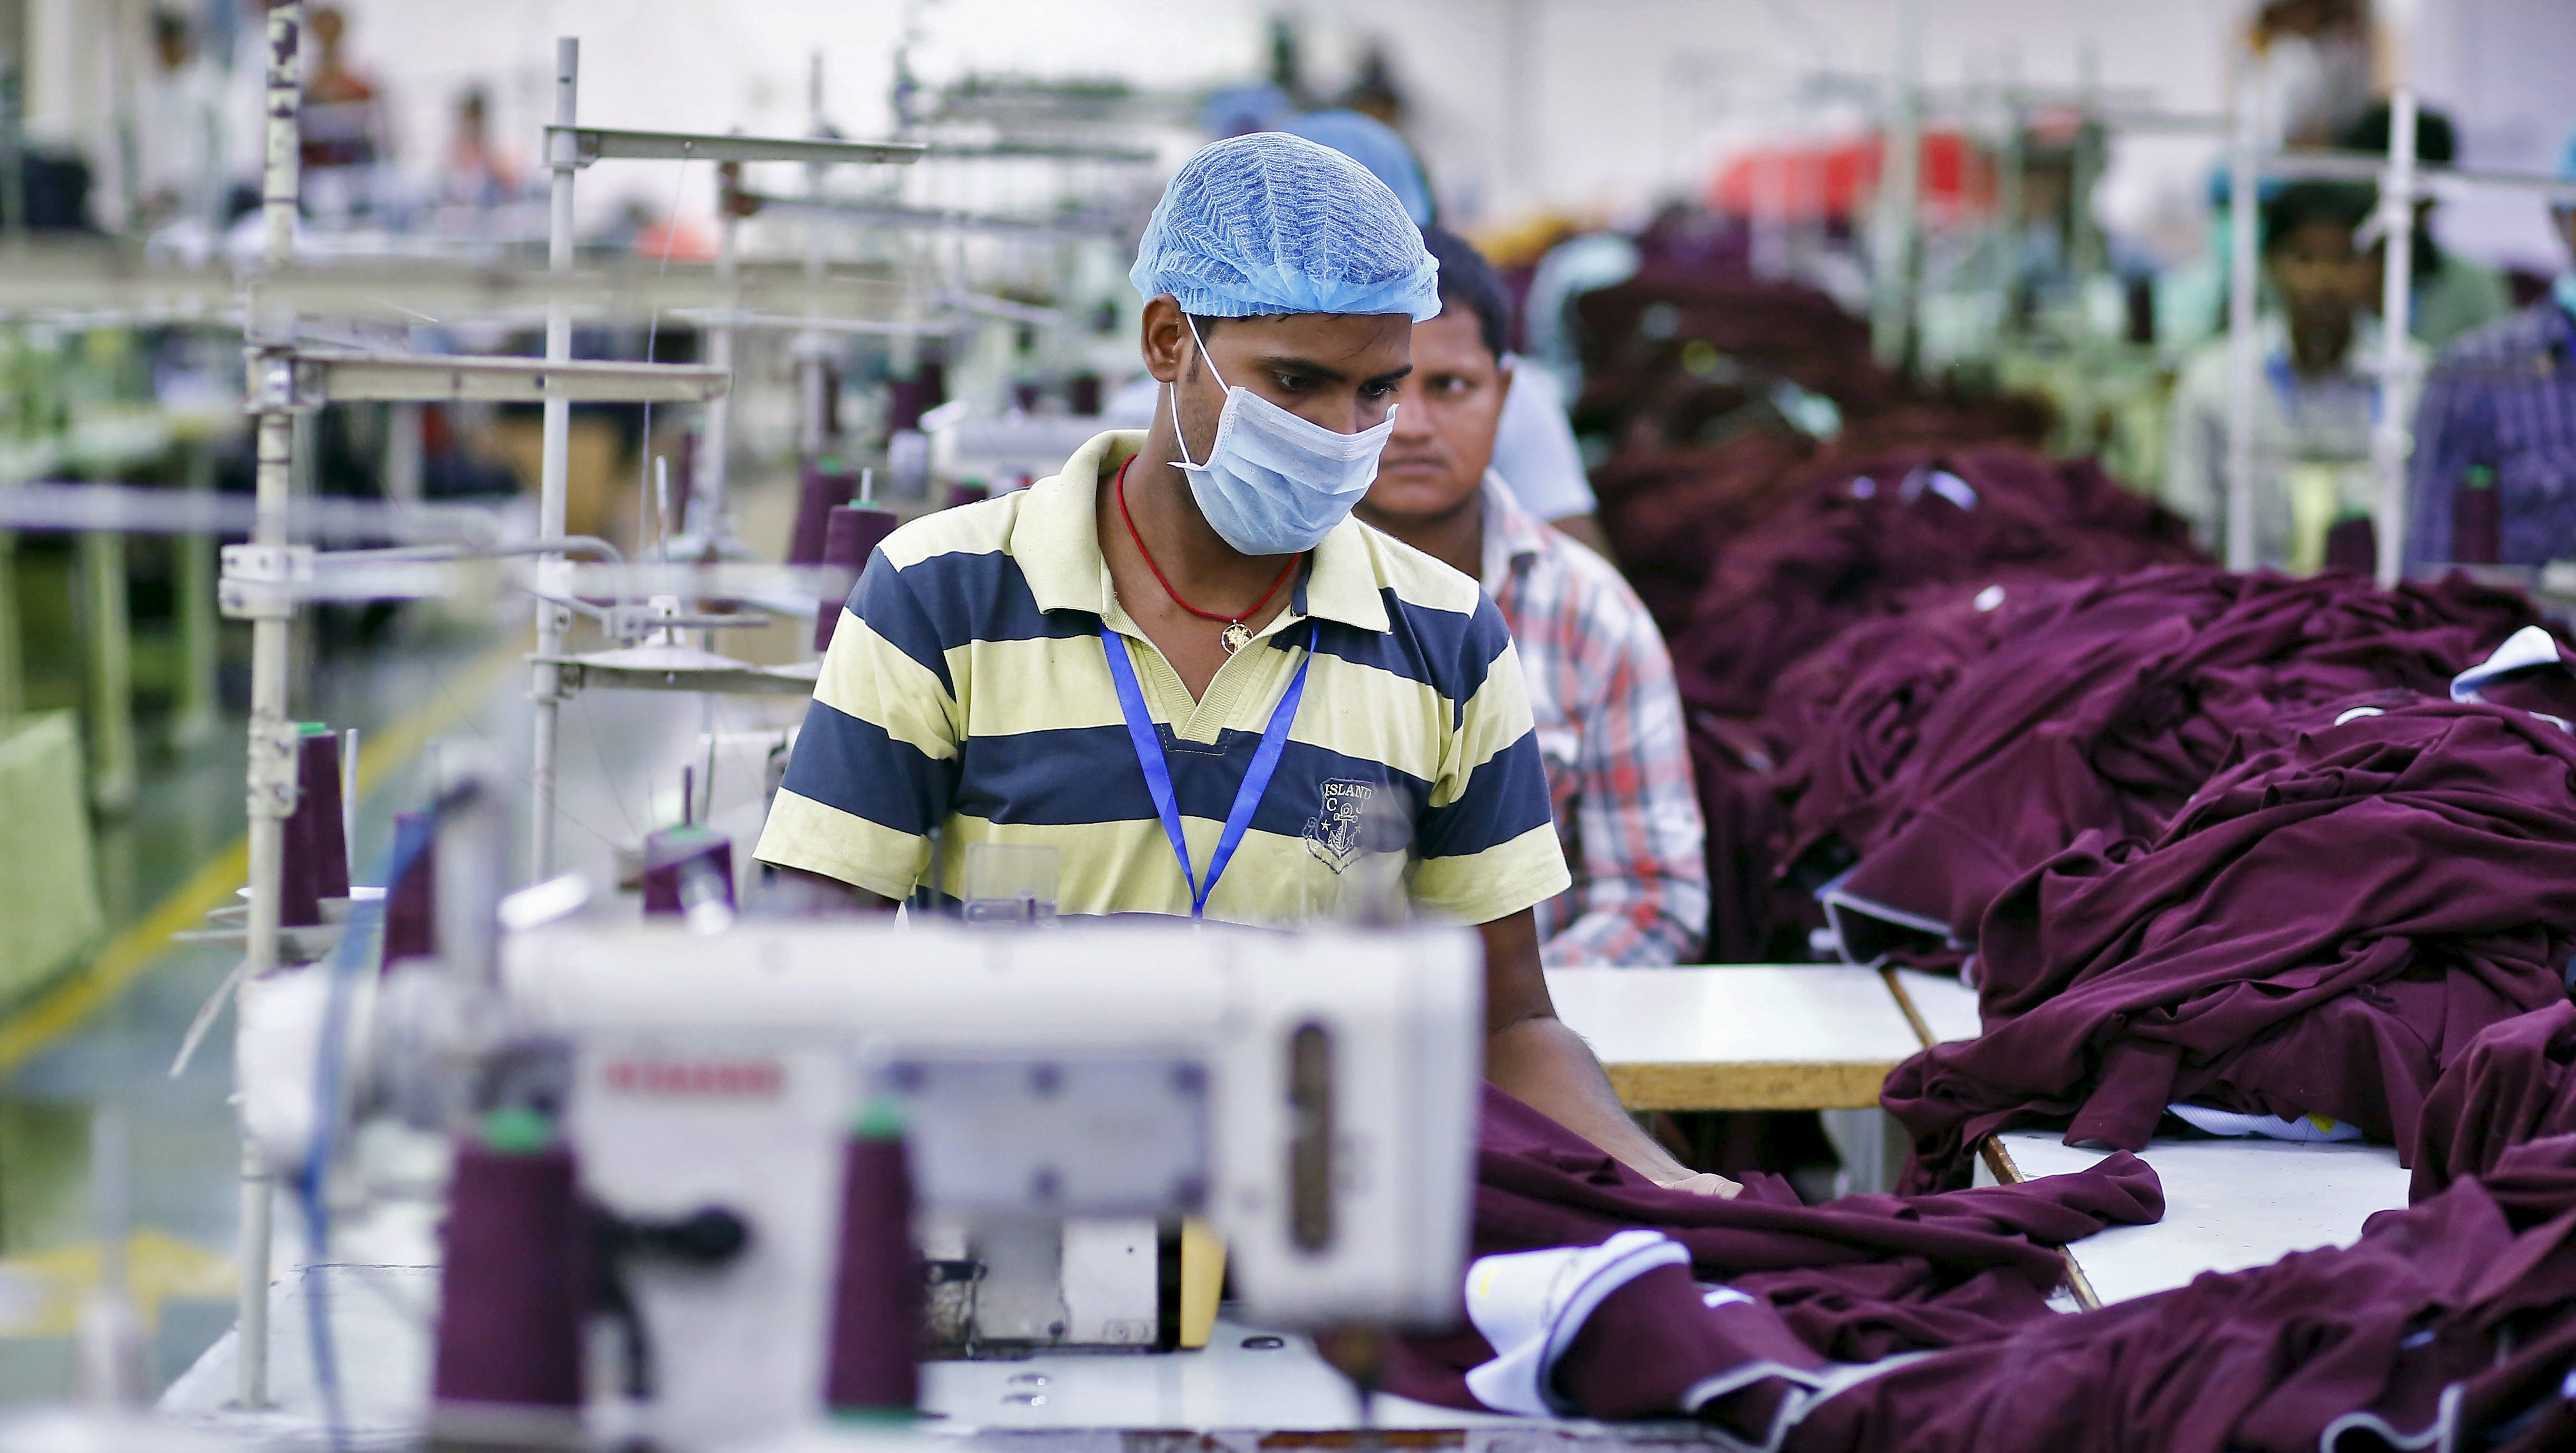 An employee works inside a garment factory of Orient Craft Ltd. in Gurgaon on the outskirts of New Delhi, India, July 3, 2015. To match Insight INDIA-LABOUR/REFORMS Picture taken July 3, 2015. REUTERS/Anindito Mukherjee - RTX1LTLA